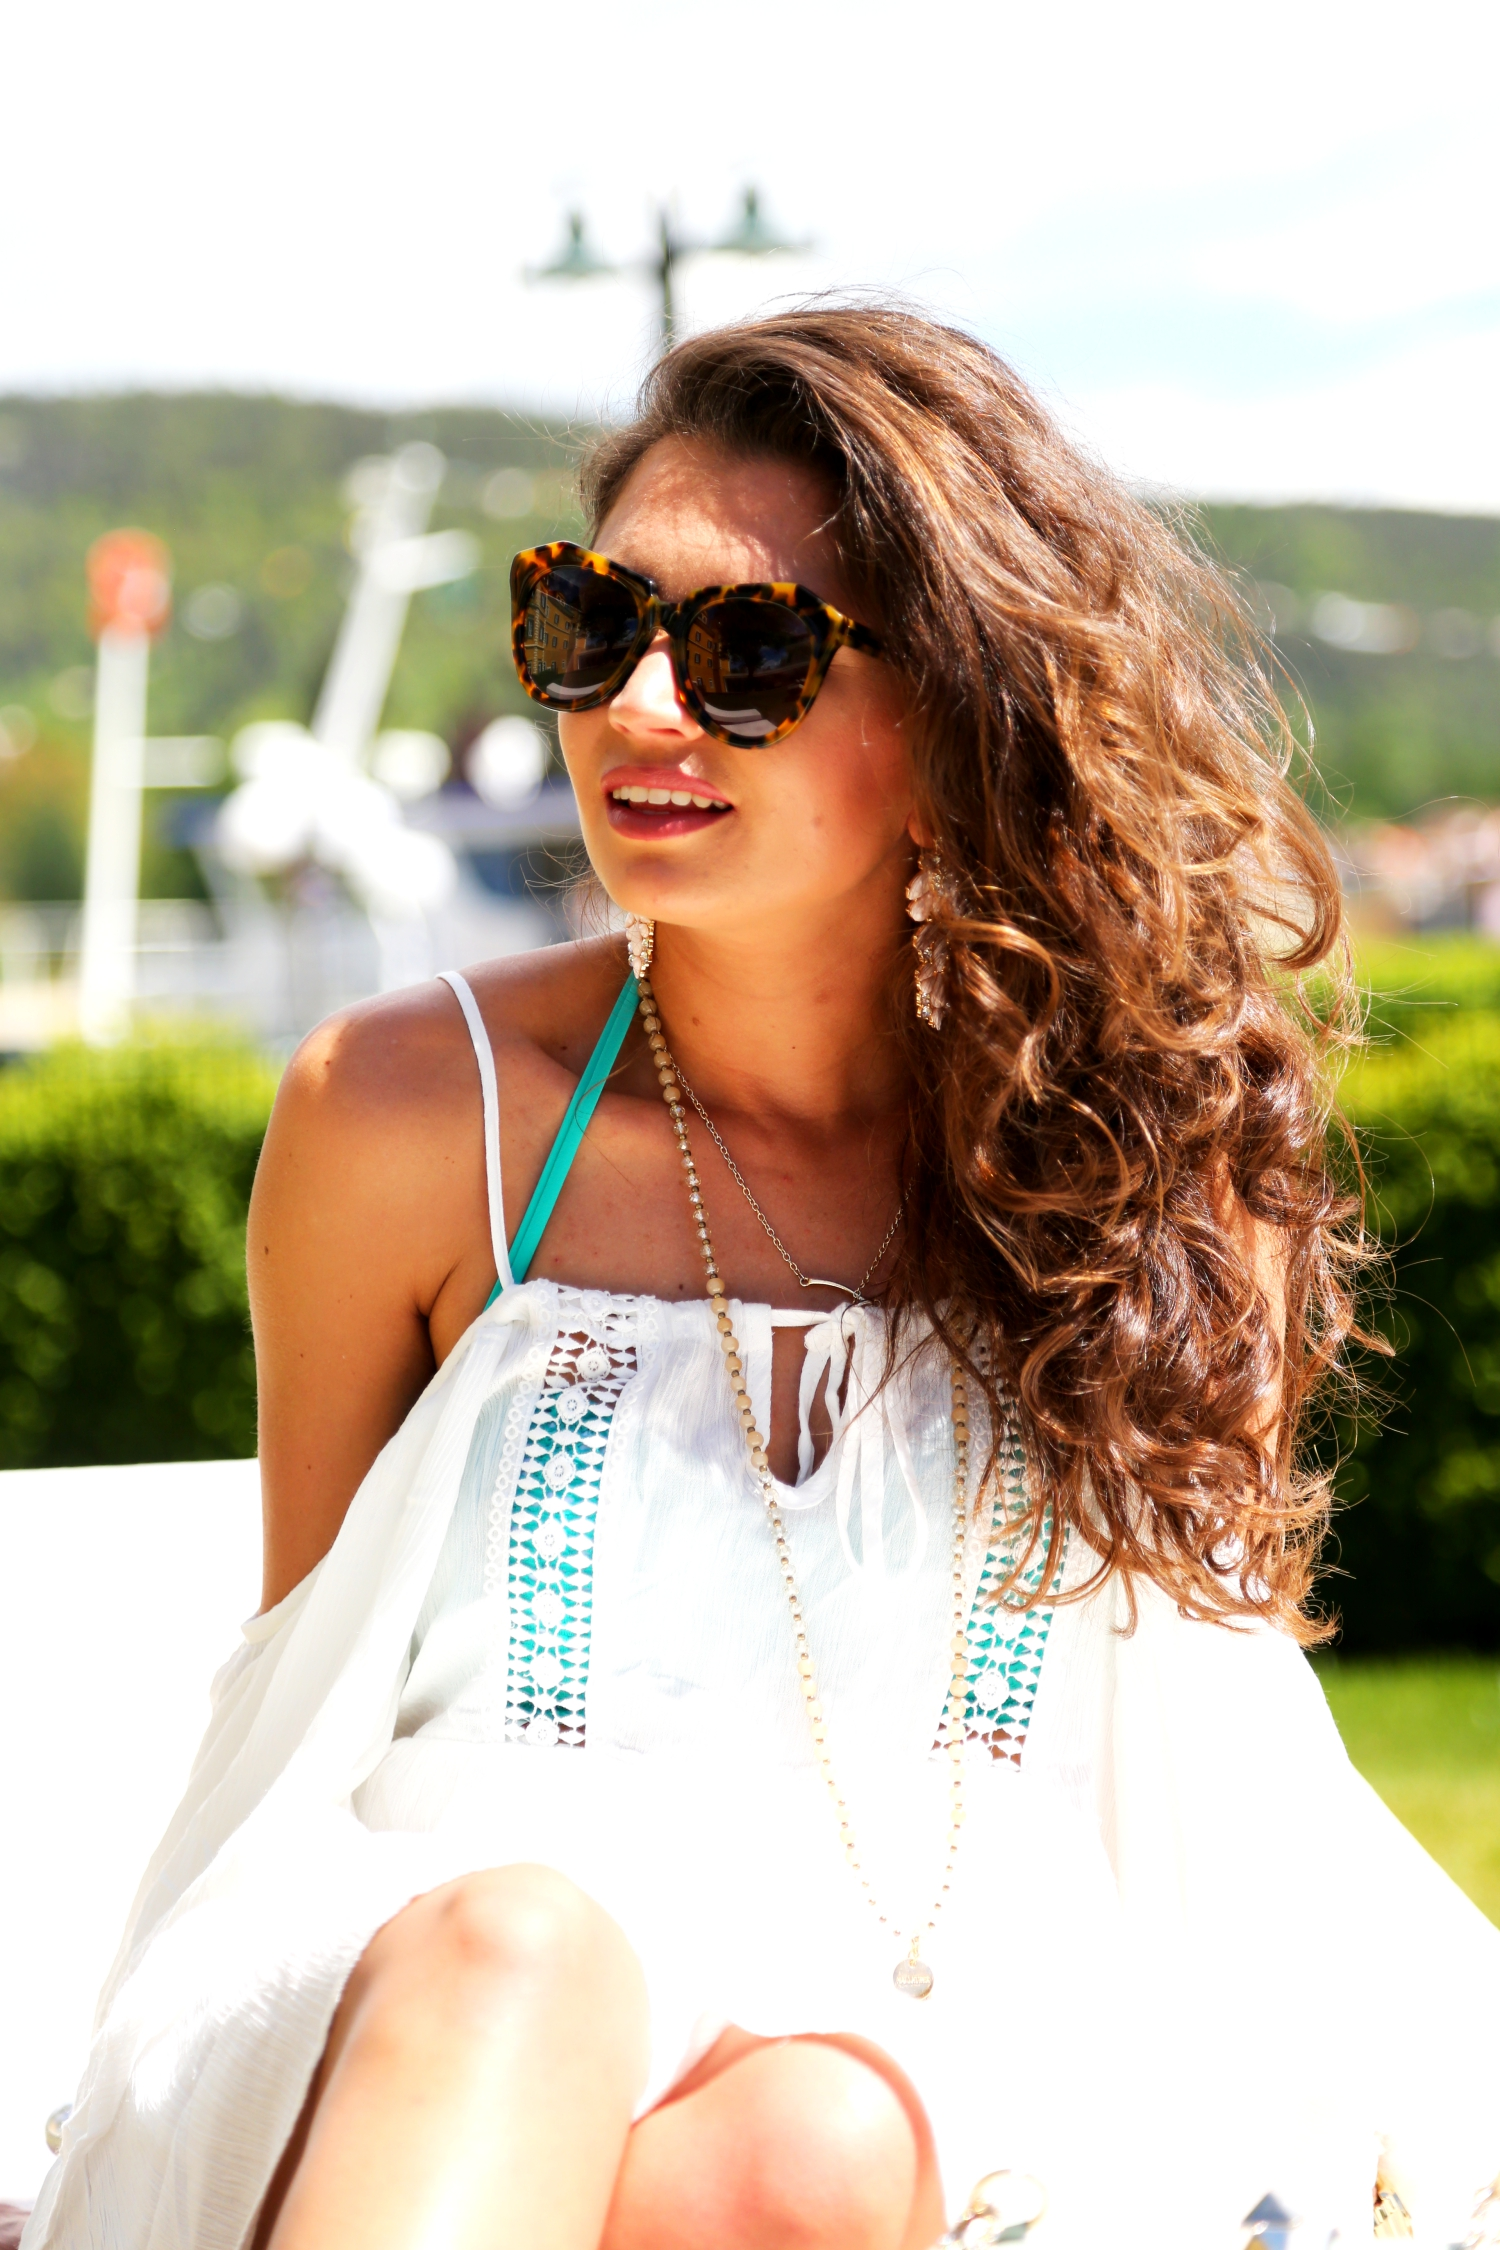 outfit-fashionhippieloves-details-spa-beach-look